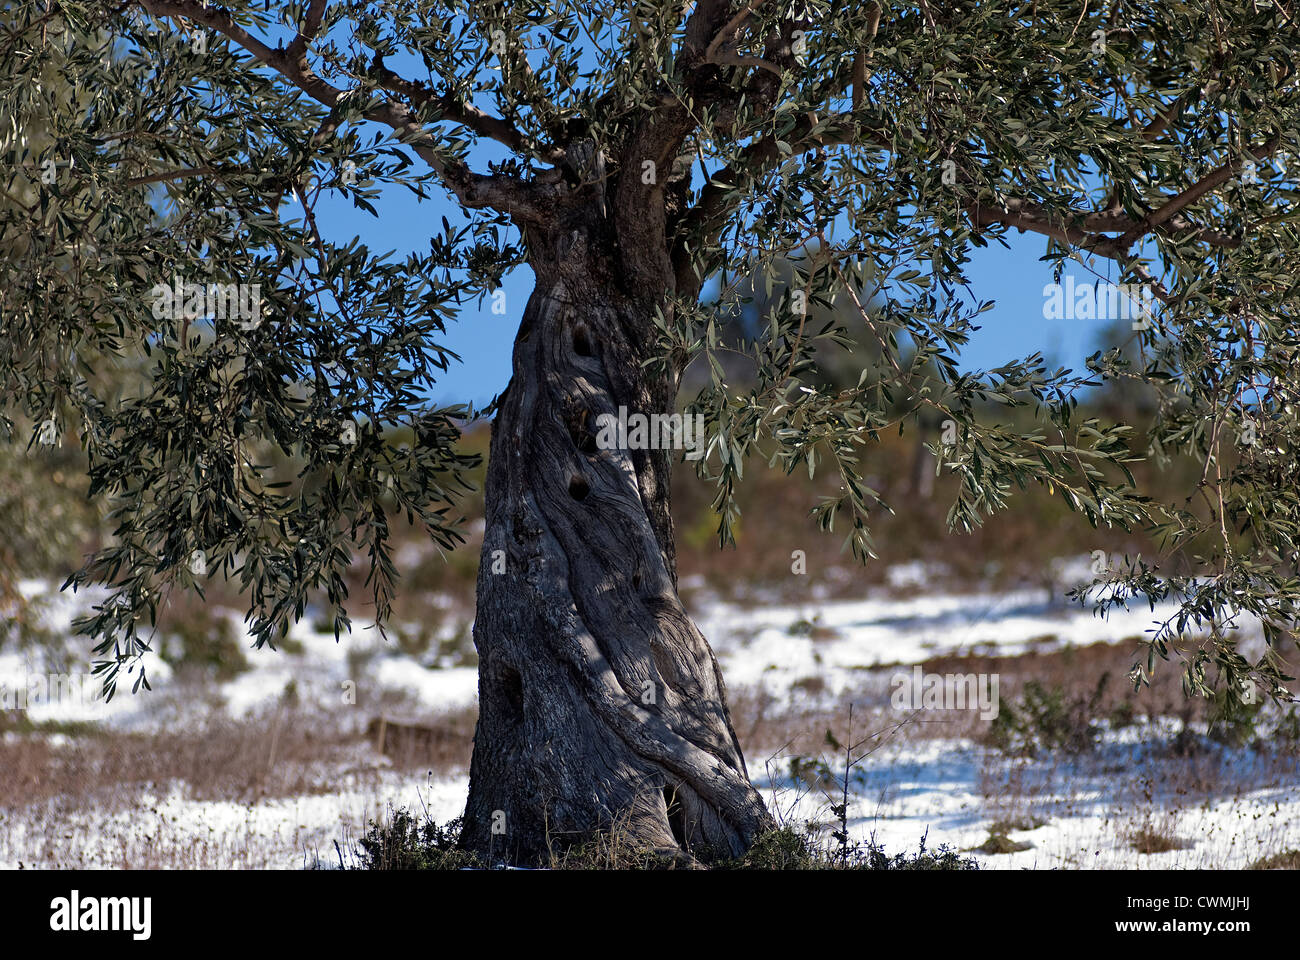 Olive tree in snowy landscape (Pelion Peninsular, Thessaly, Greece) Stock Photo